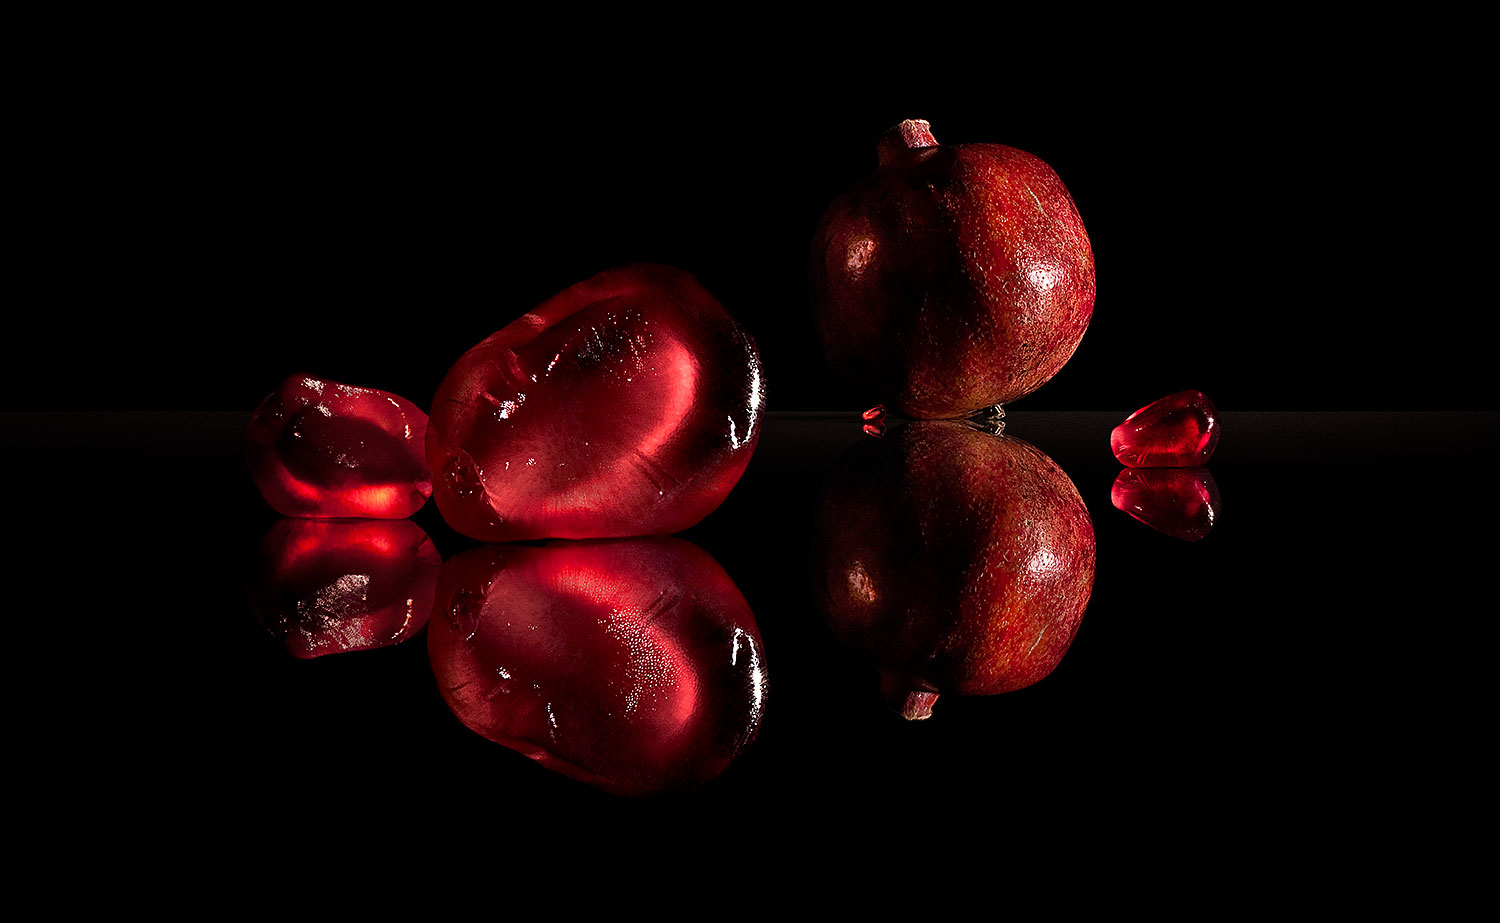 Pomegranate-Final.jpg